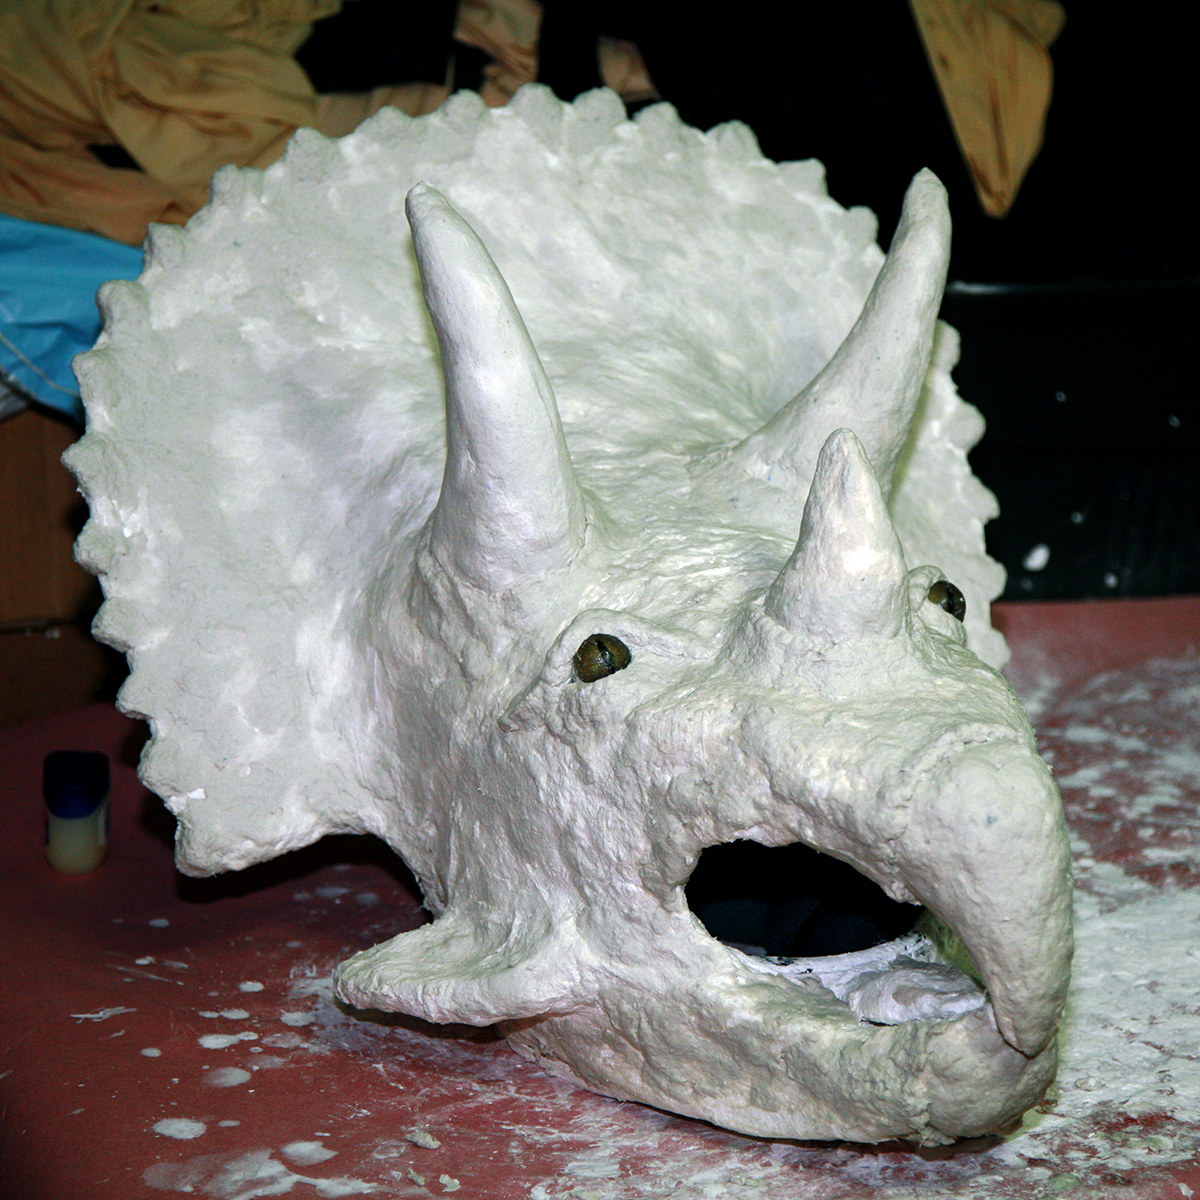 An all white plaster sculped mask of a triceratops dinosaur.